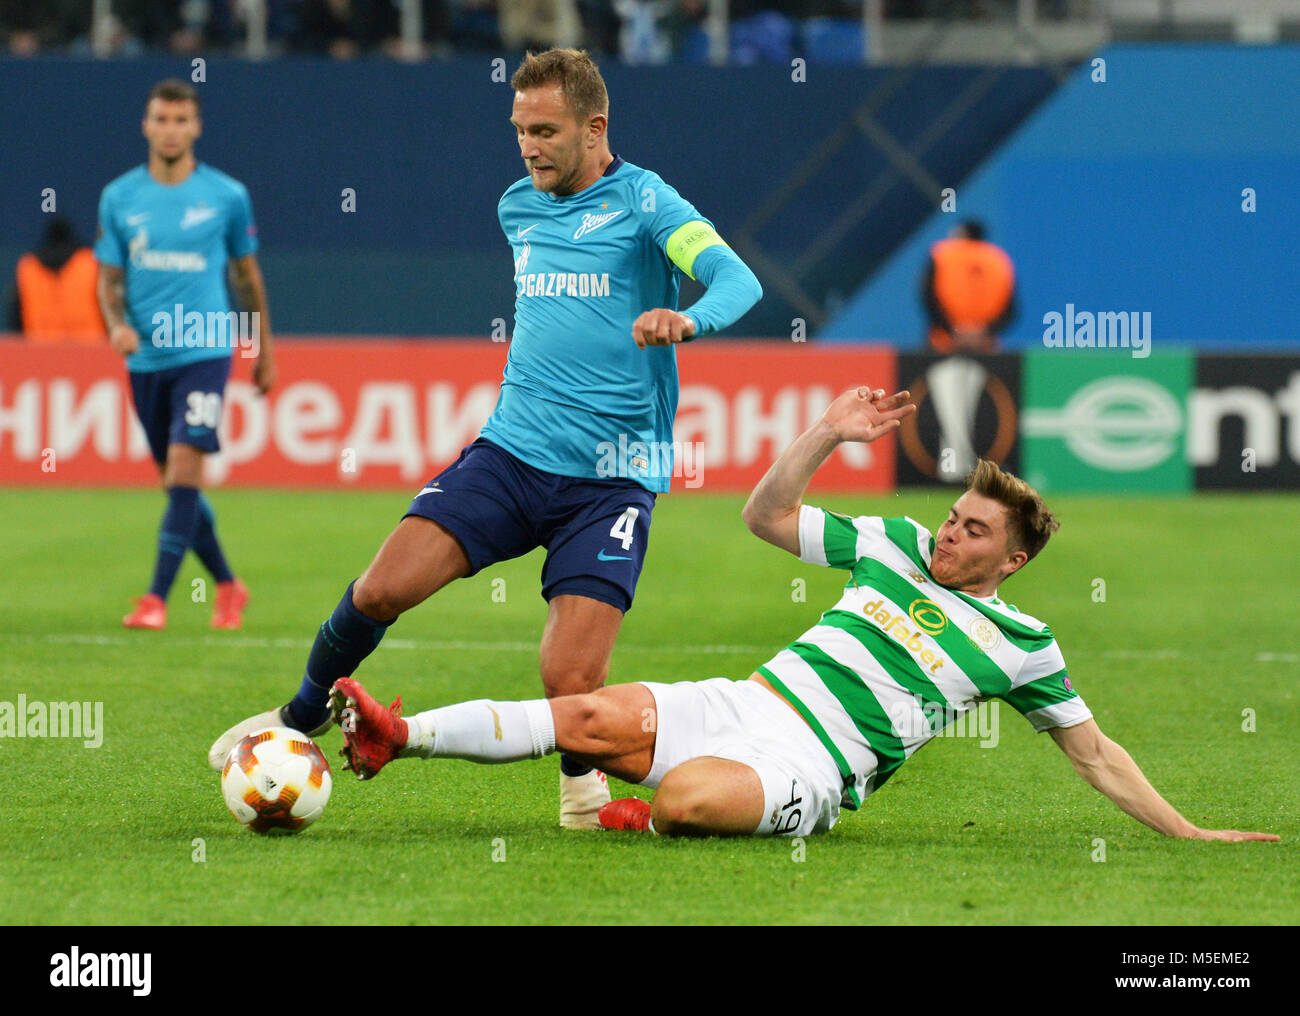 St. Petersburg, Russia. 22nd Feb, 2018. Russia. St. Petersburg. February 22, 2018. Players of ''Zenit'' - Stock Image